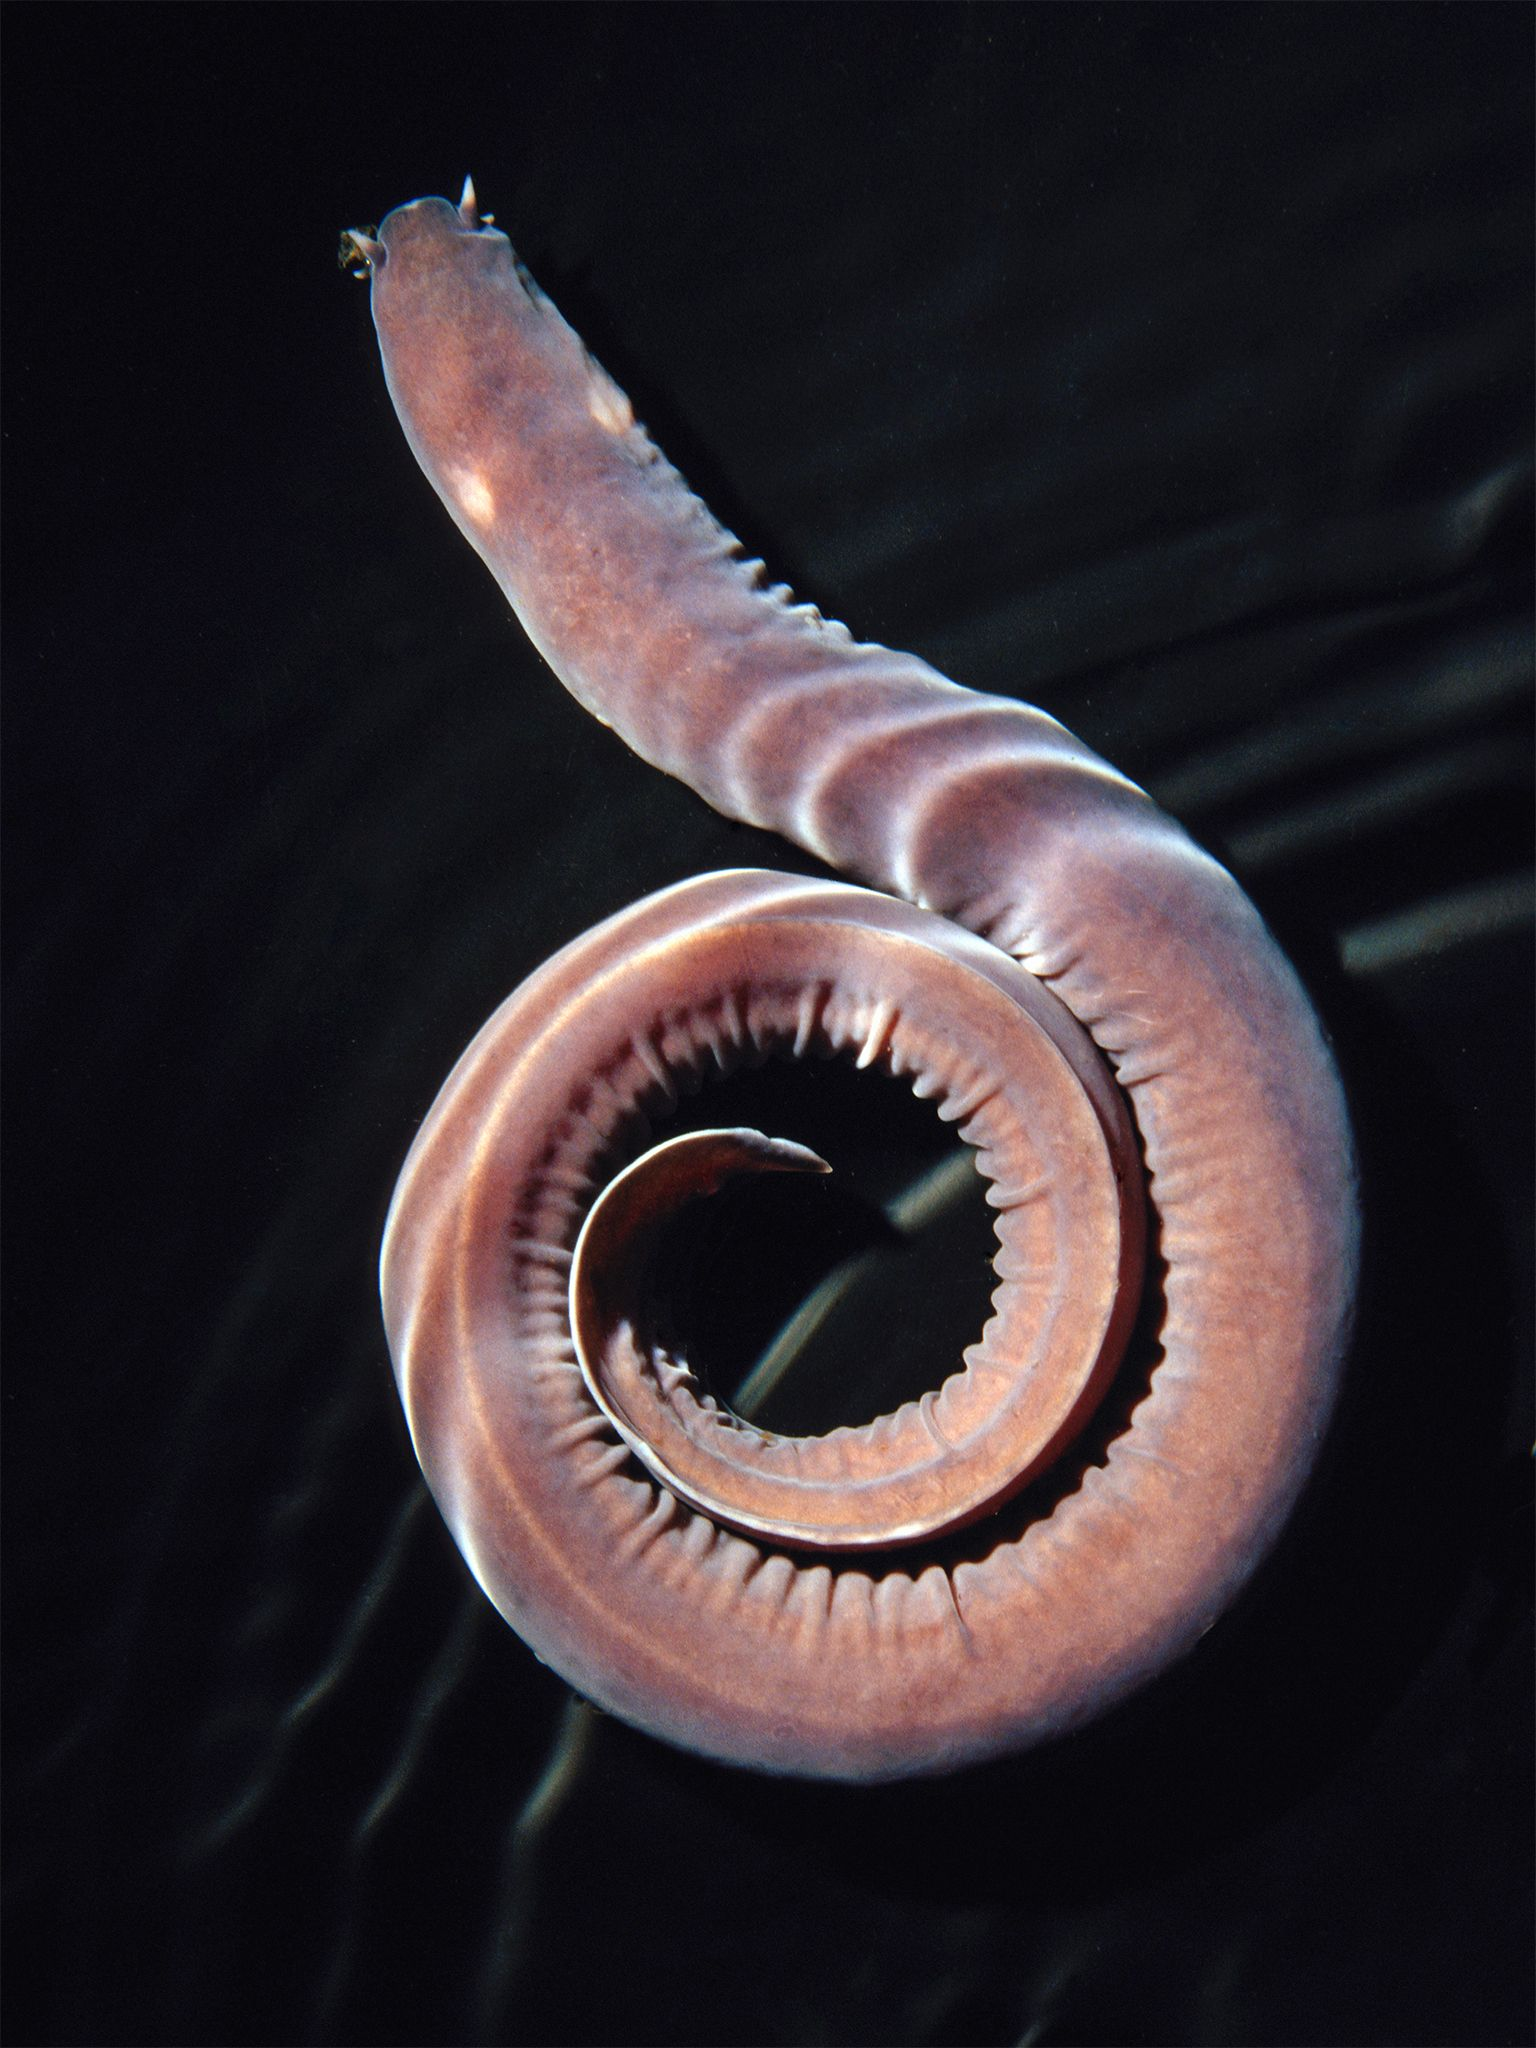 These things produce a slime with tiny fibers in it that will gum up your gills. I don't have gills, but I'd just as soon avoid them anyway.